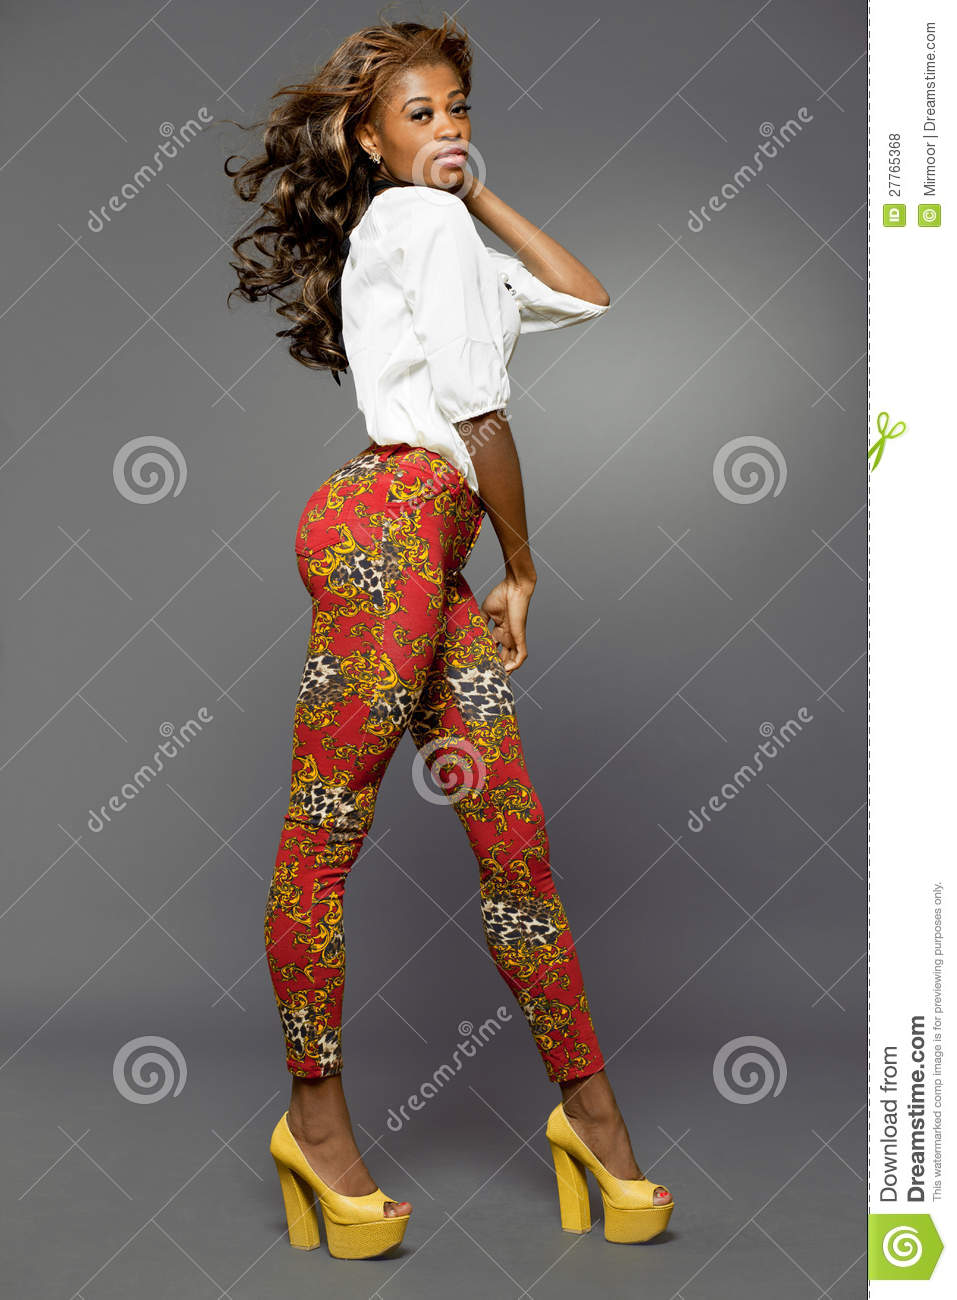 African-american Fashion Model. Royalty Free Stock Photos